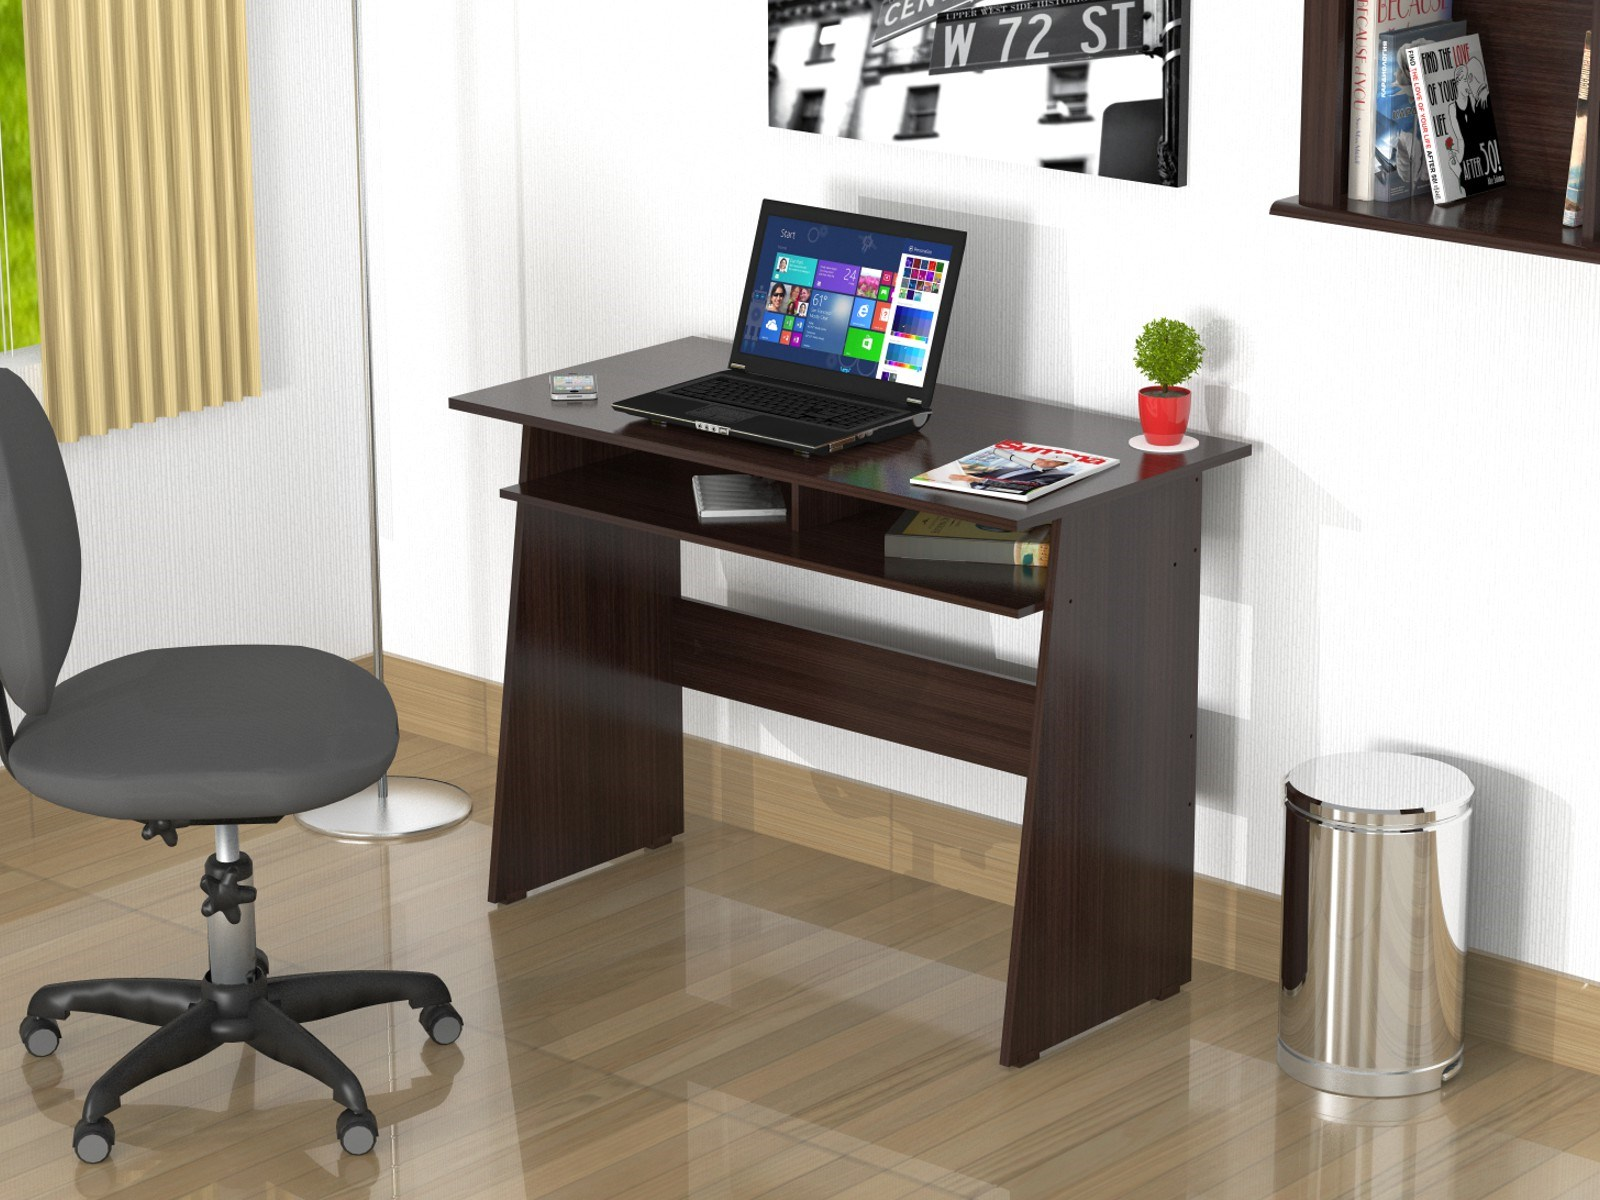 Writing Desk with Storage Area - Melamine /Engineered wood